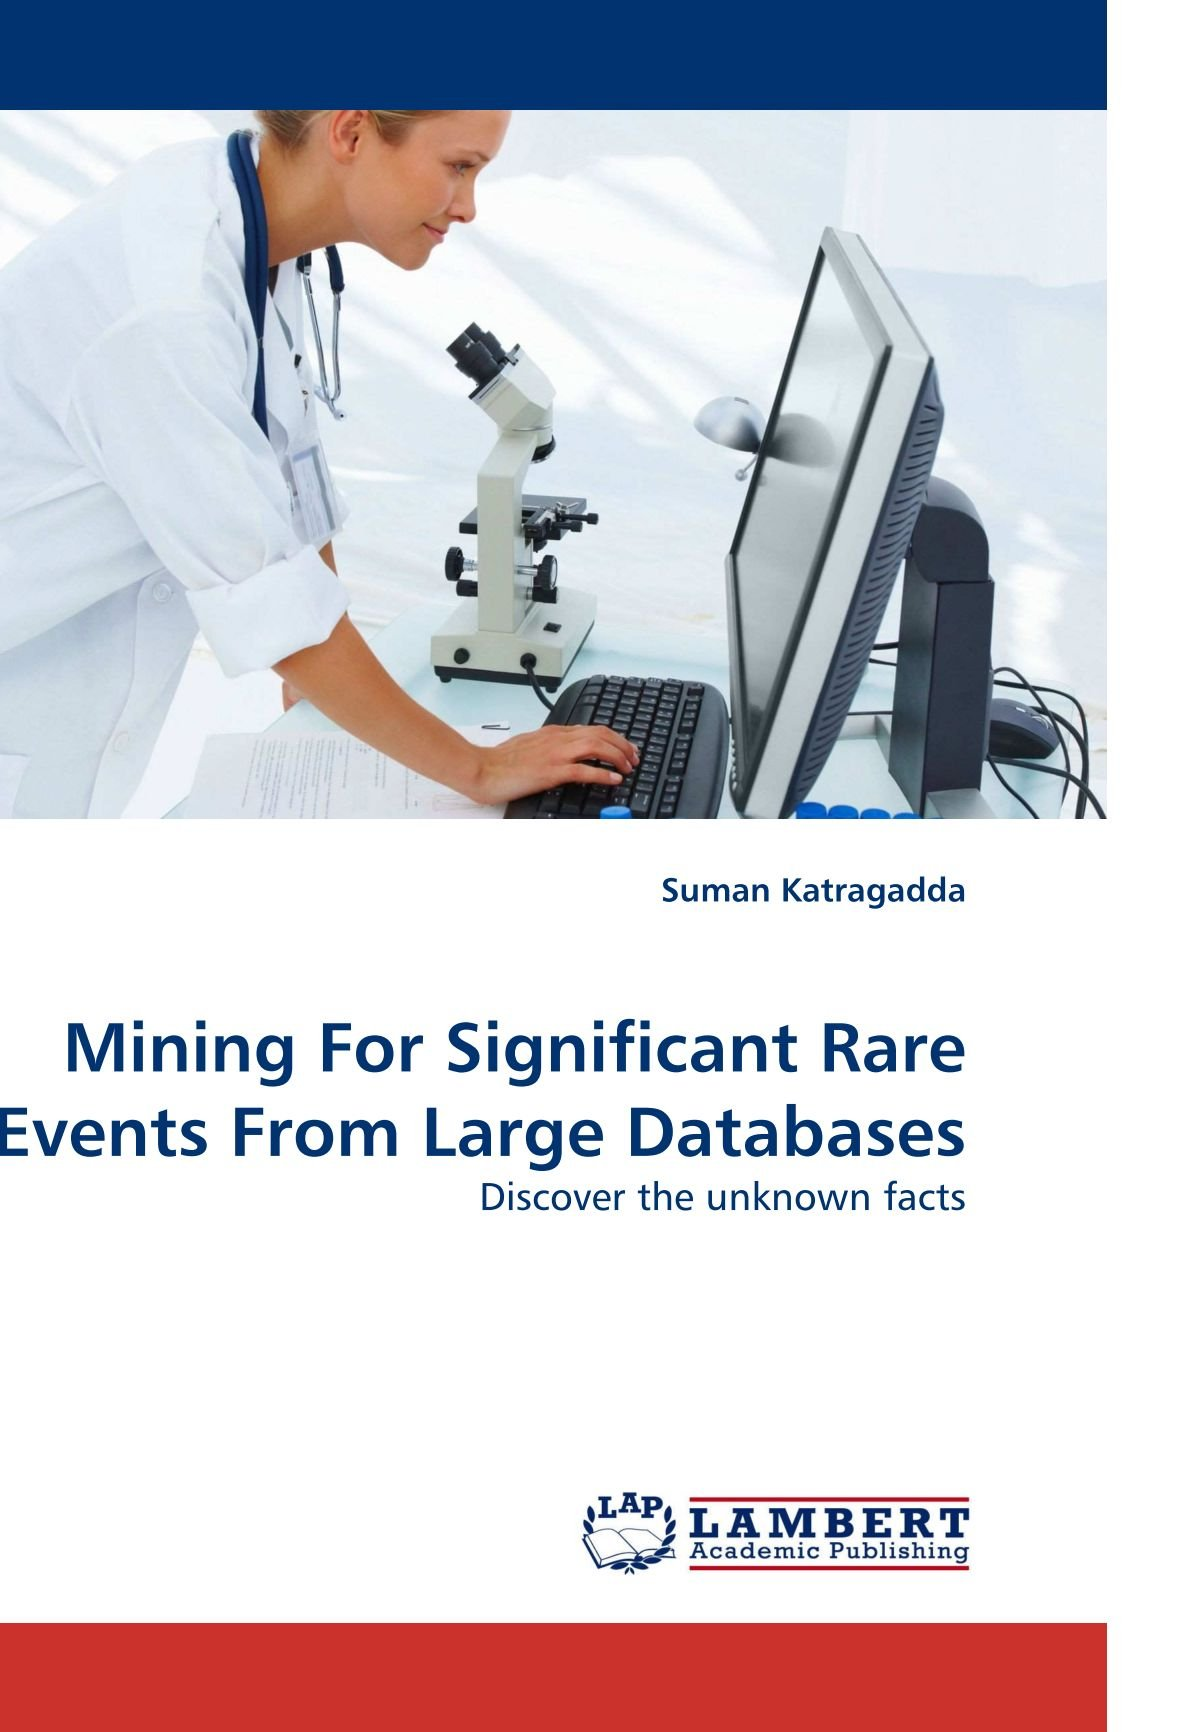 Mining For Significant Rare Events From Large Databases: Discover the unknown facts pdf